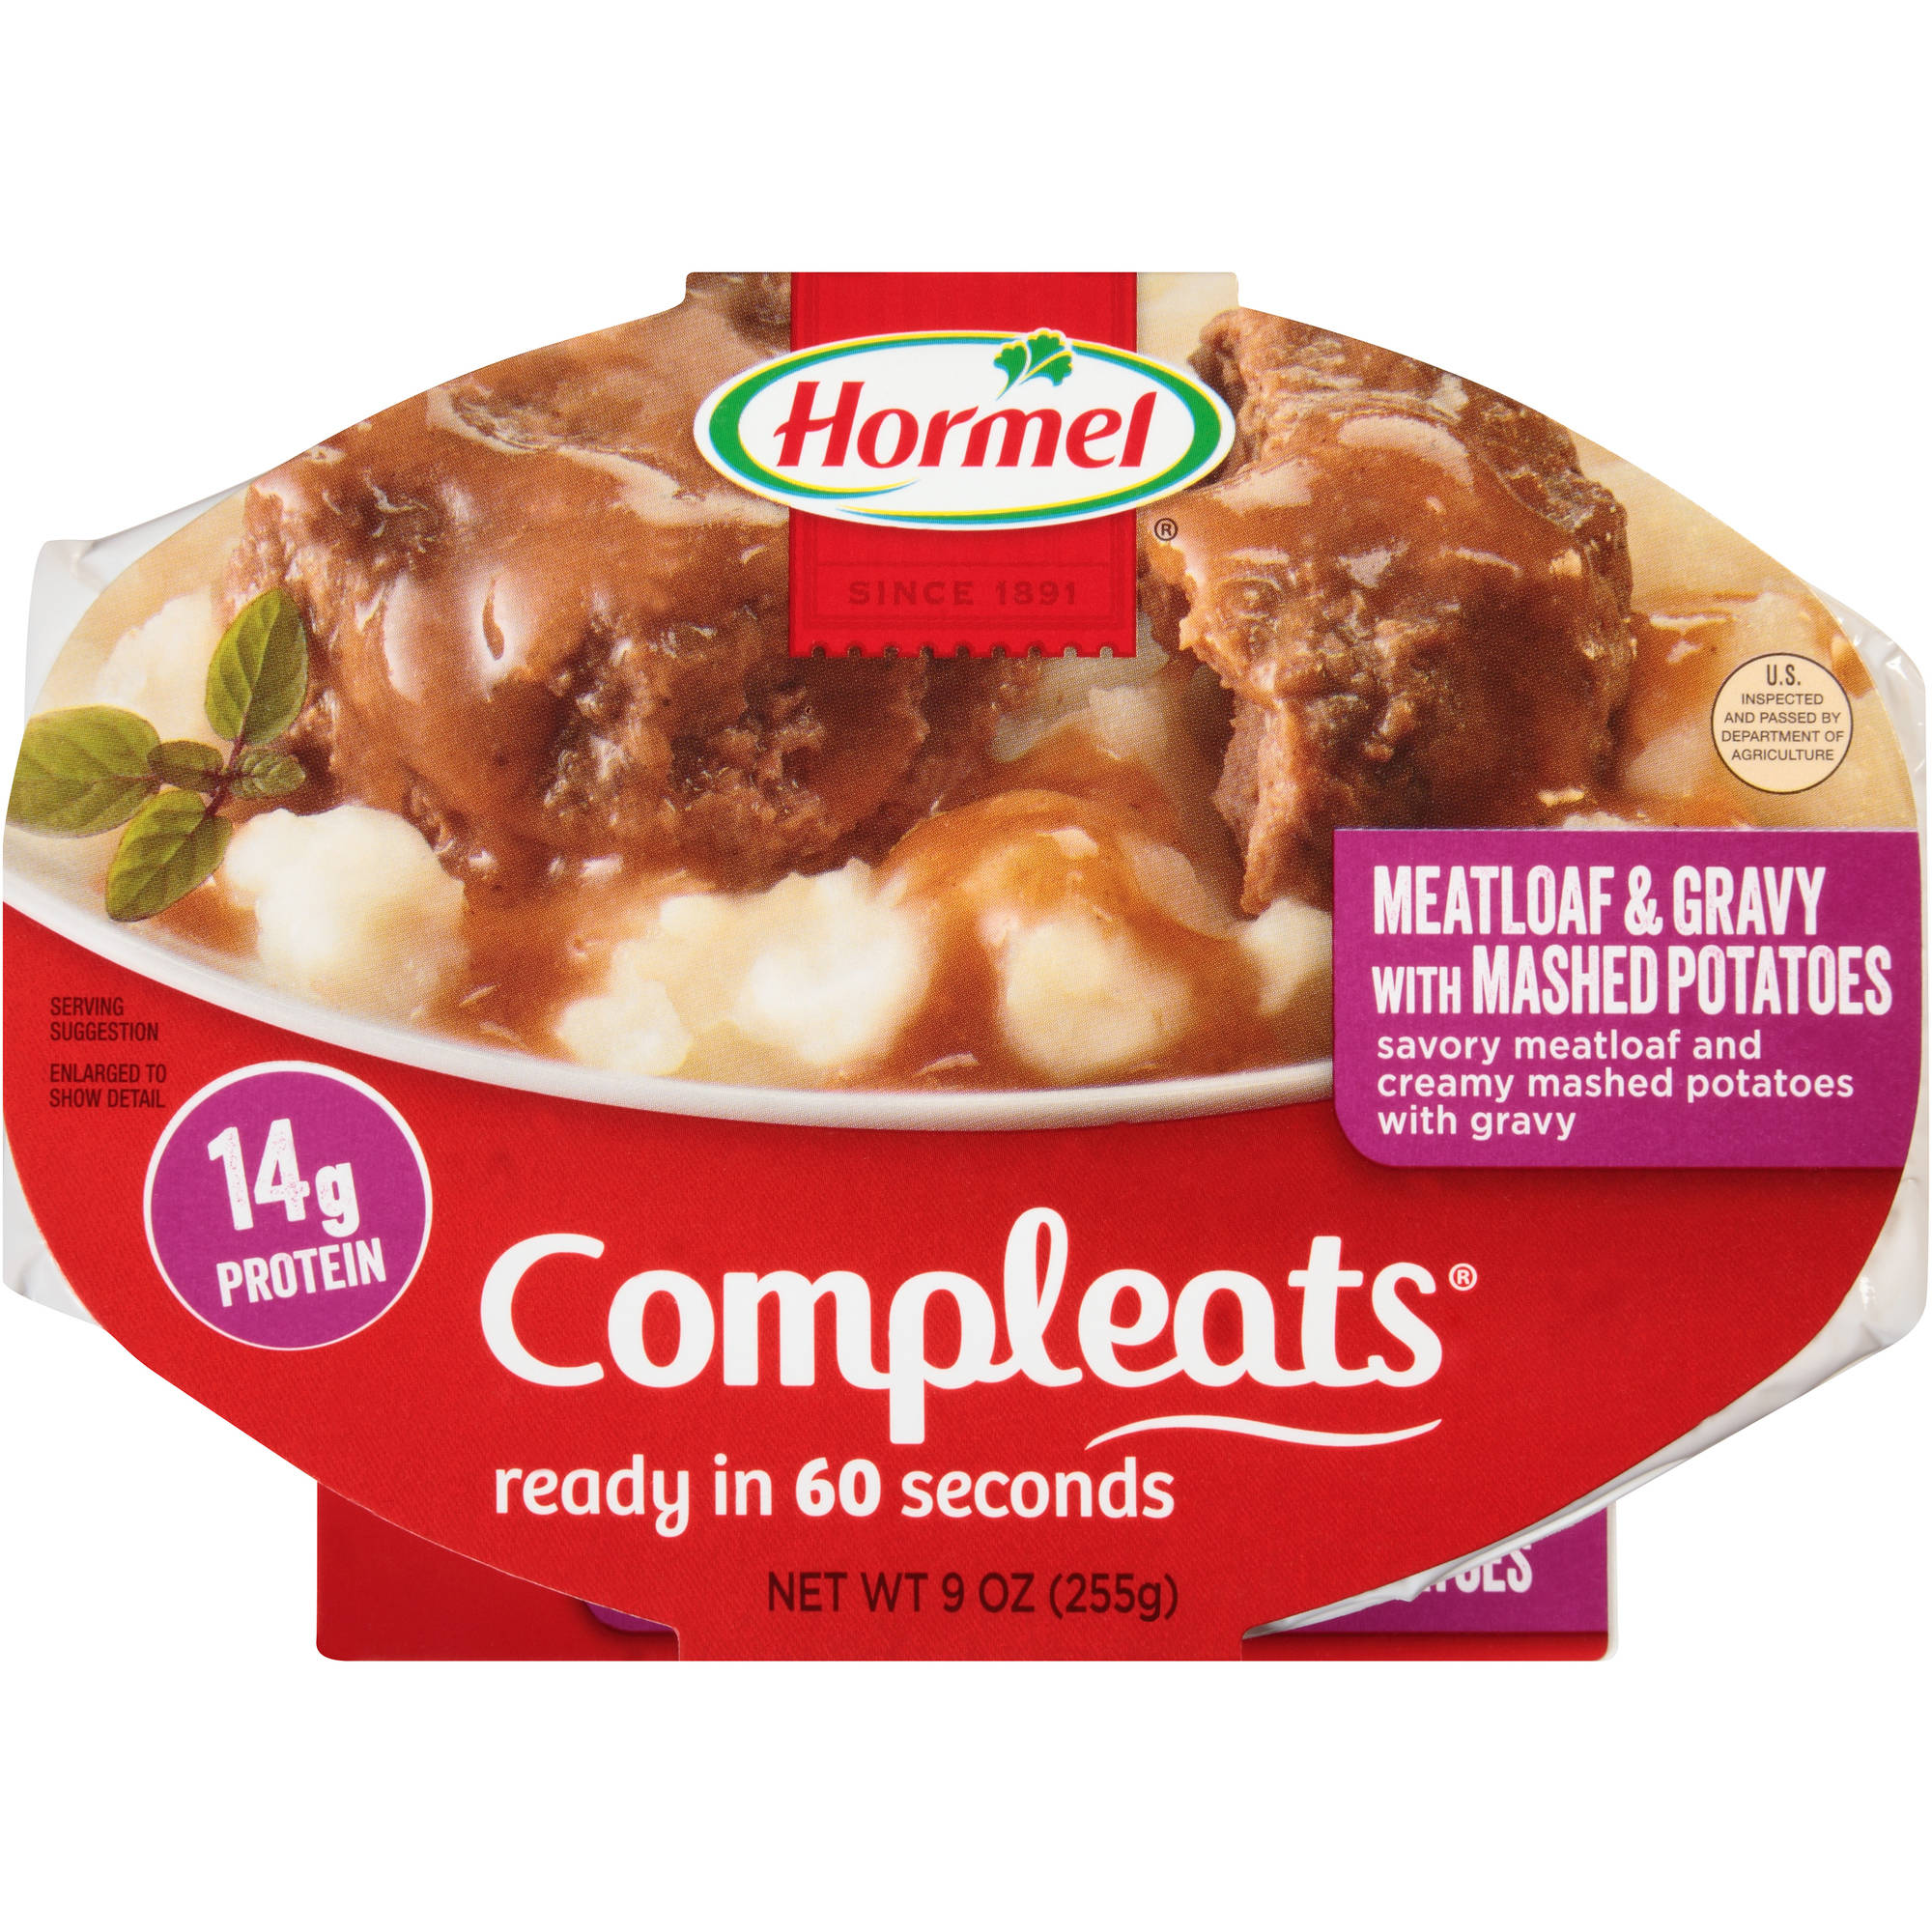 Hormel Compleats Meatloaf & Gravy with Mashed Potatoes, 9 oz